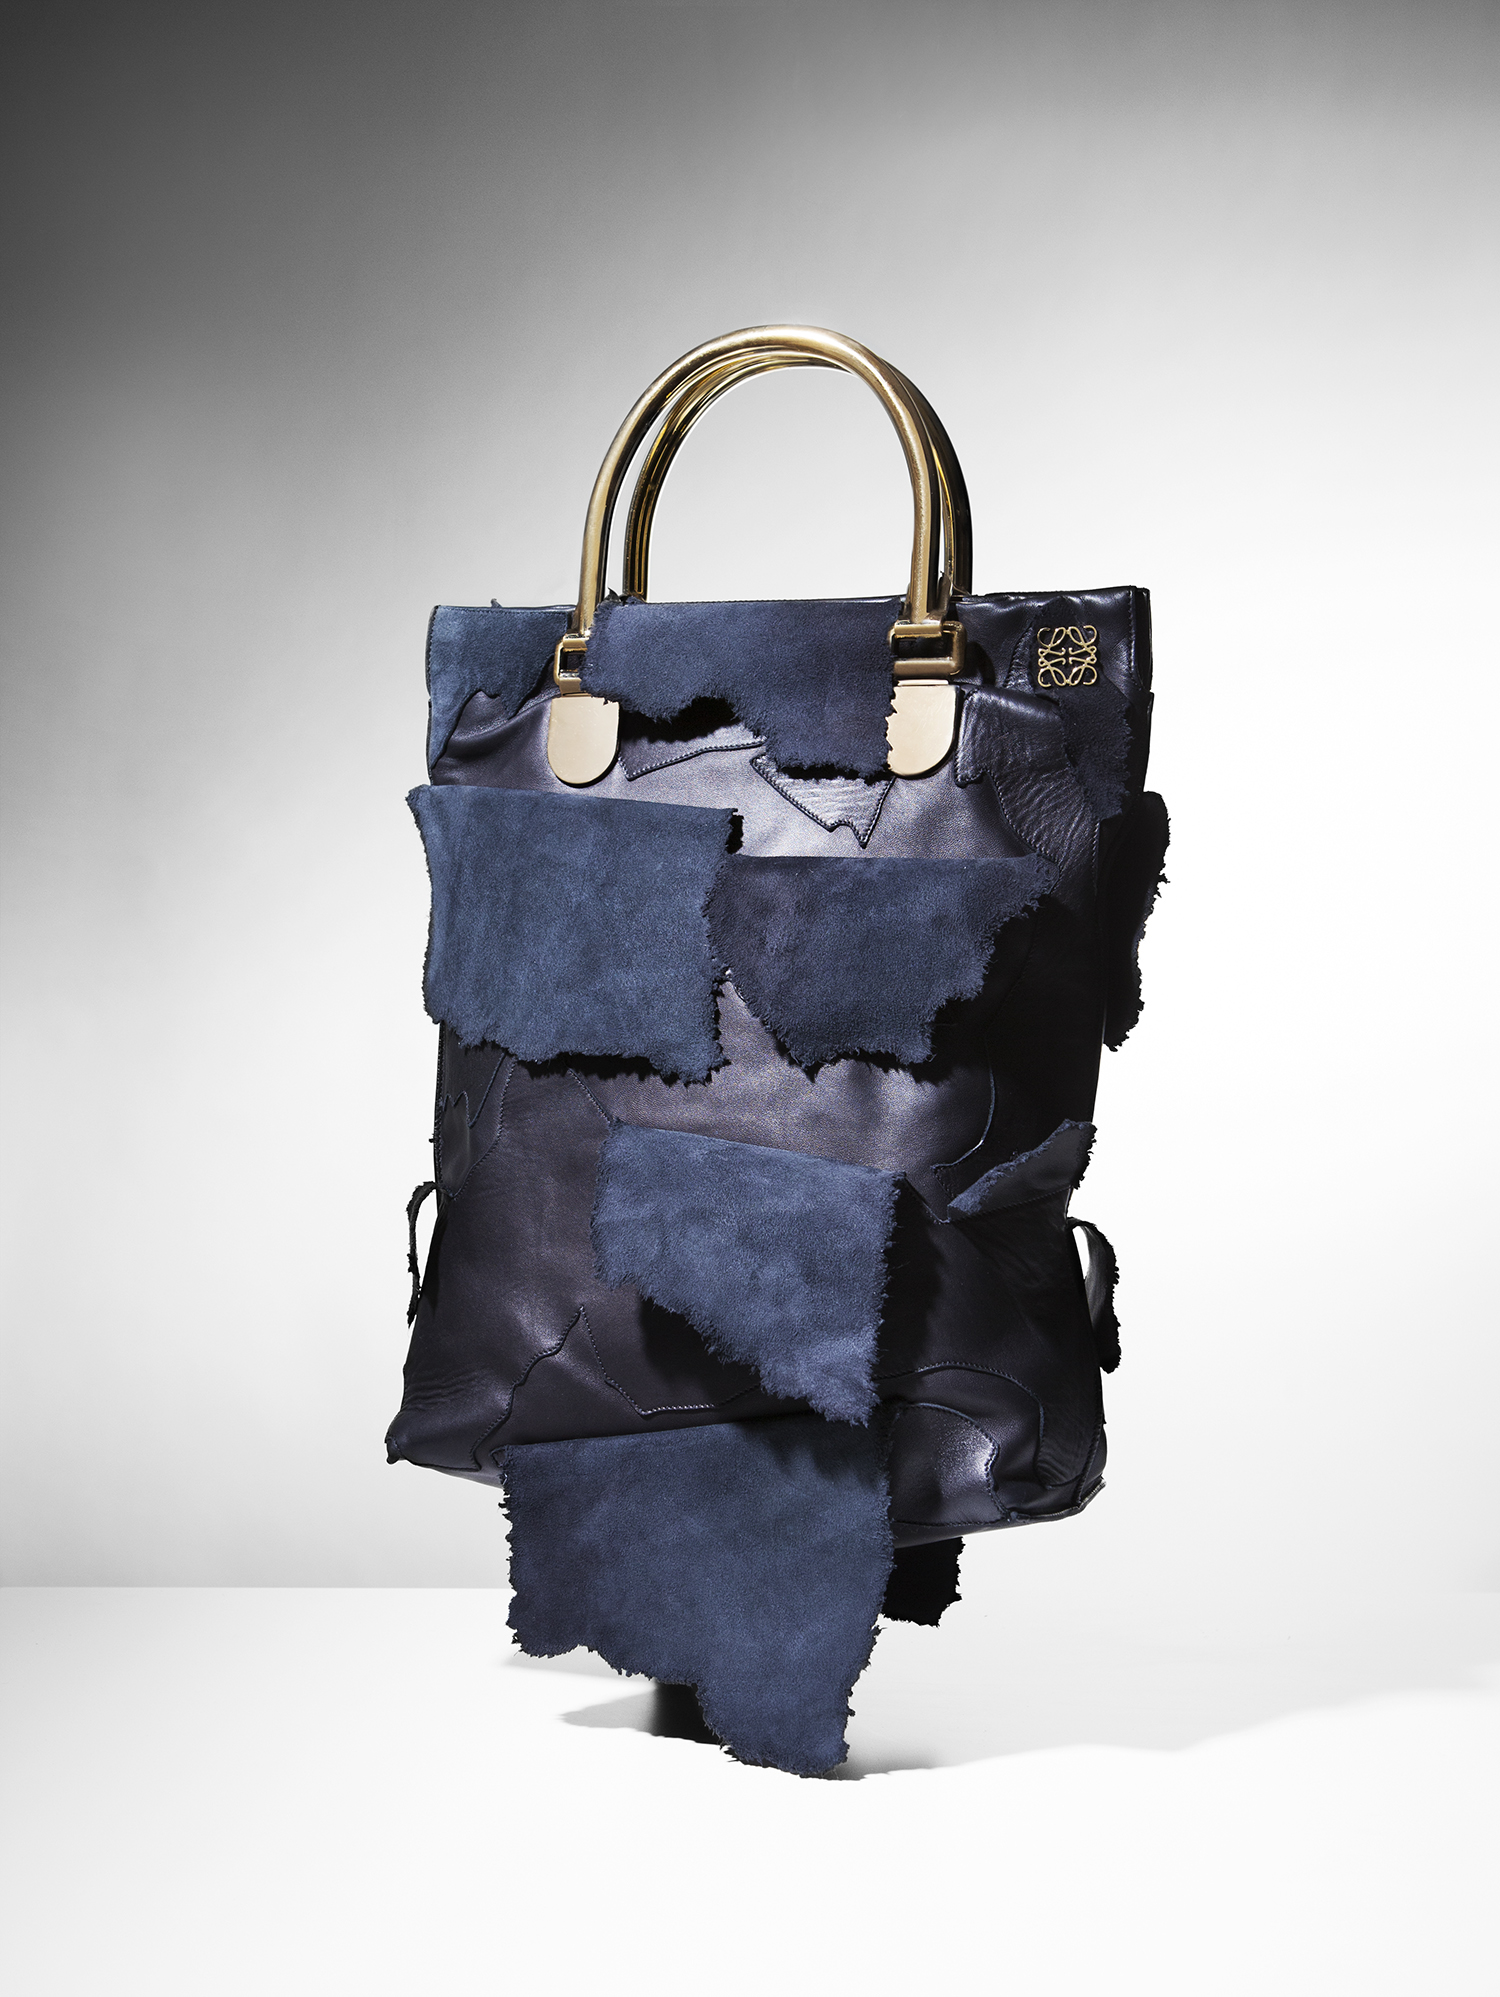 Bag available at Forty Five Ten